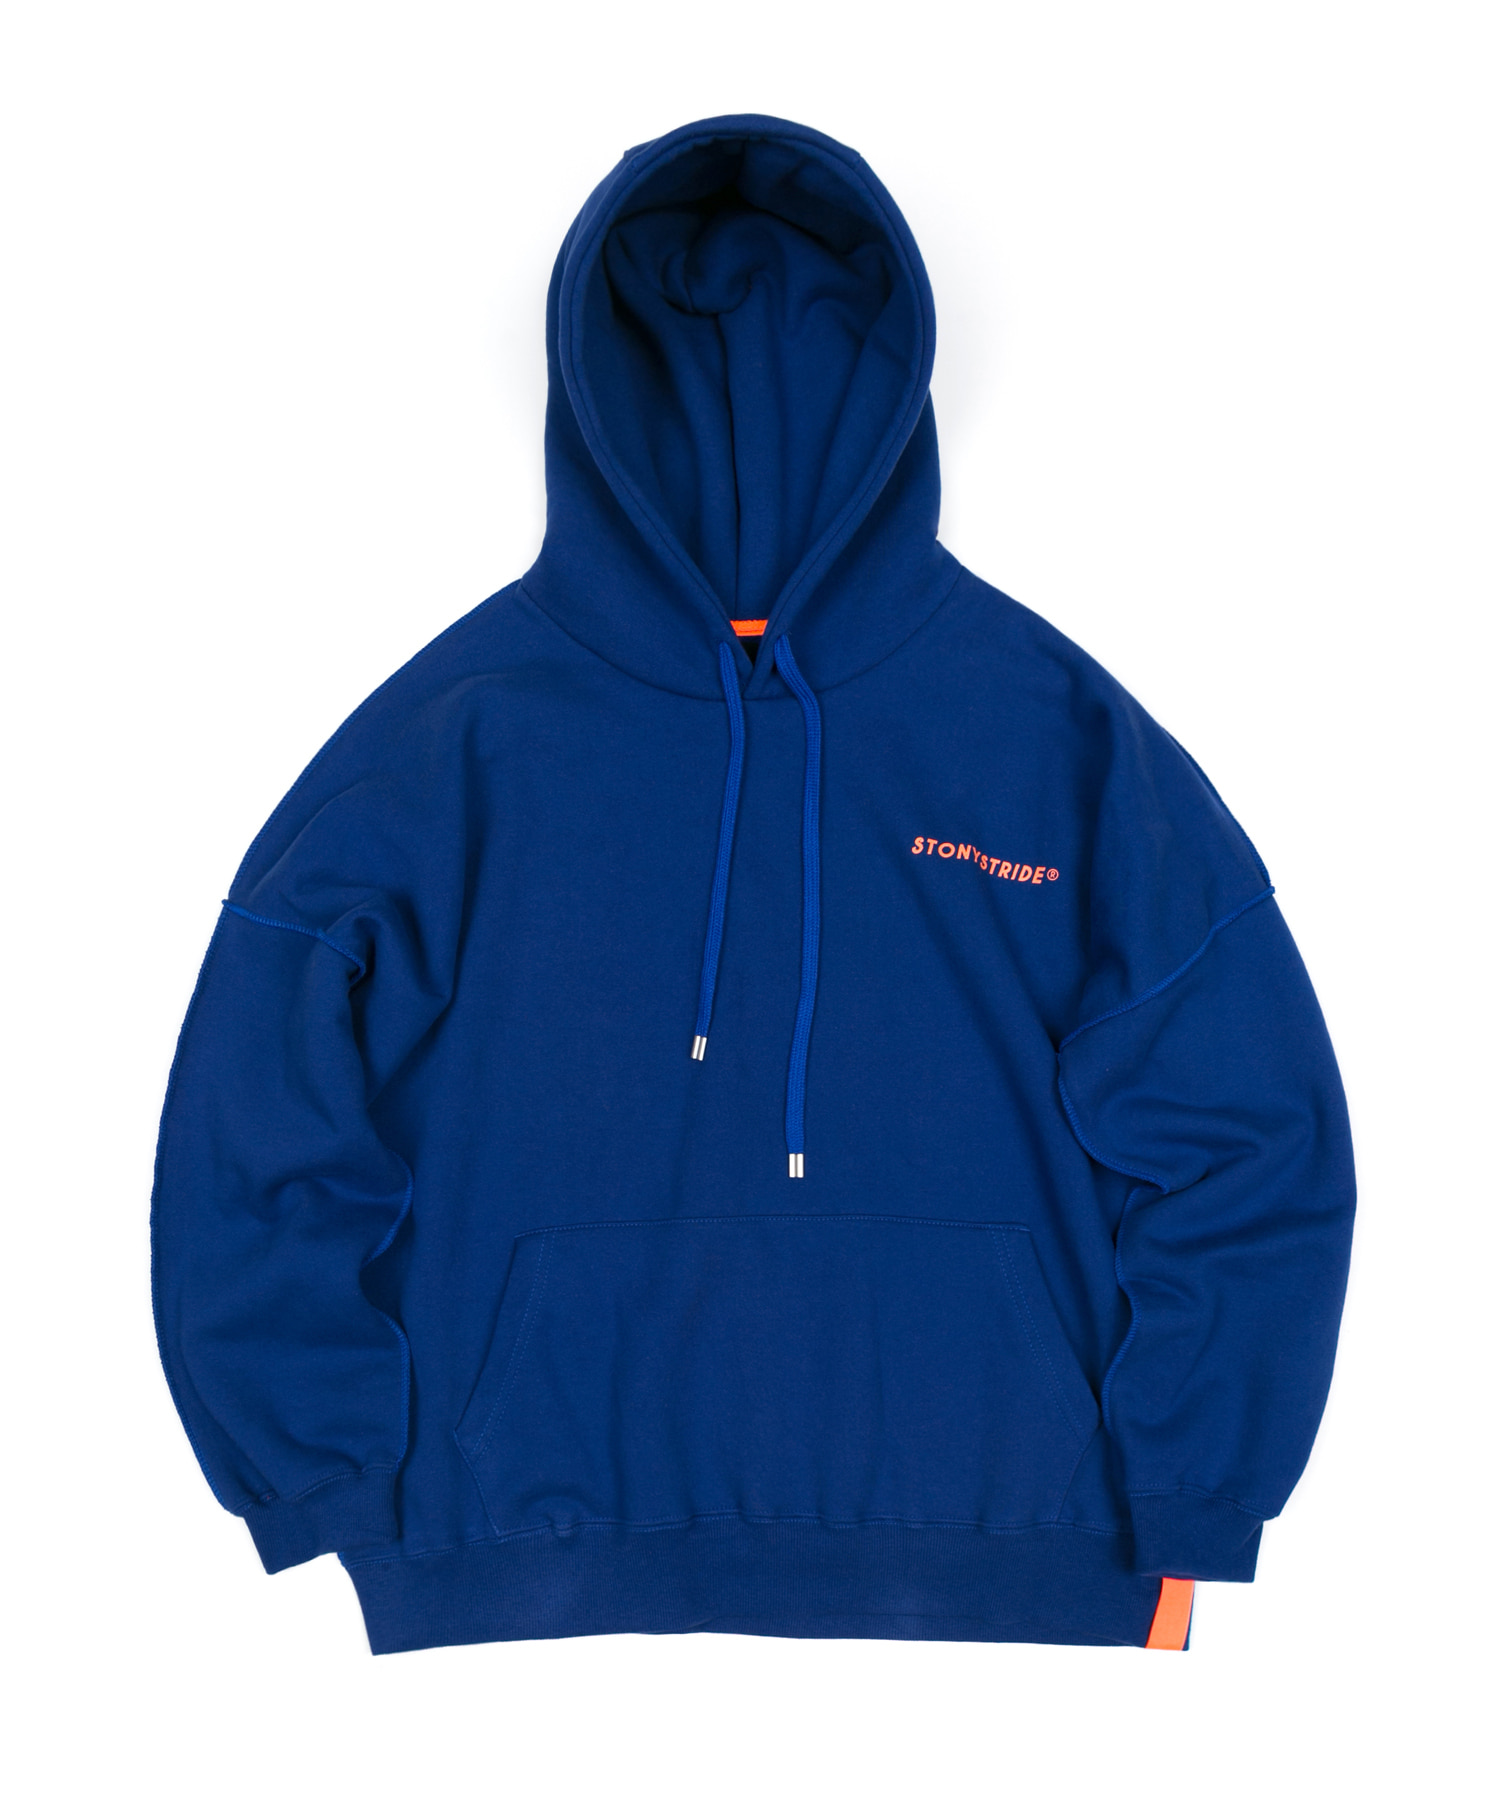 INSIDEOUT STITCH OVER HOODIE - NAVY